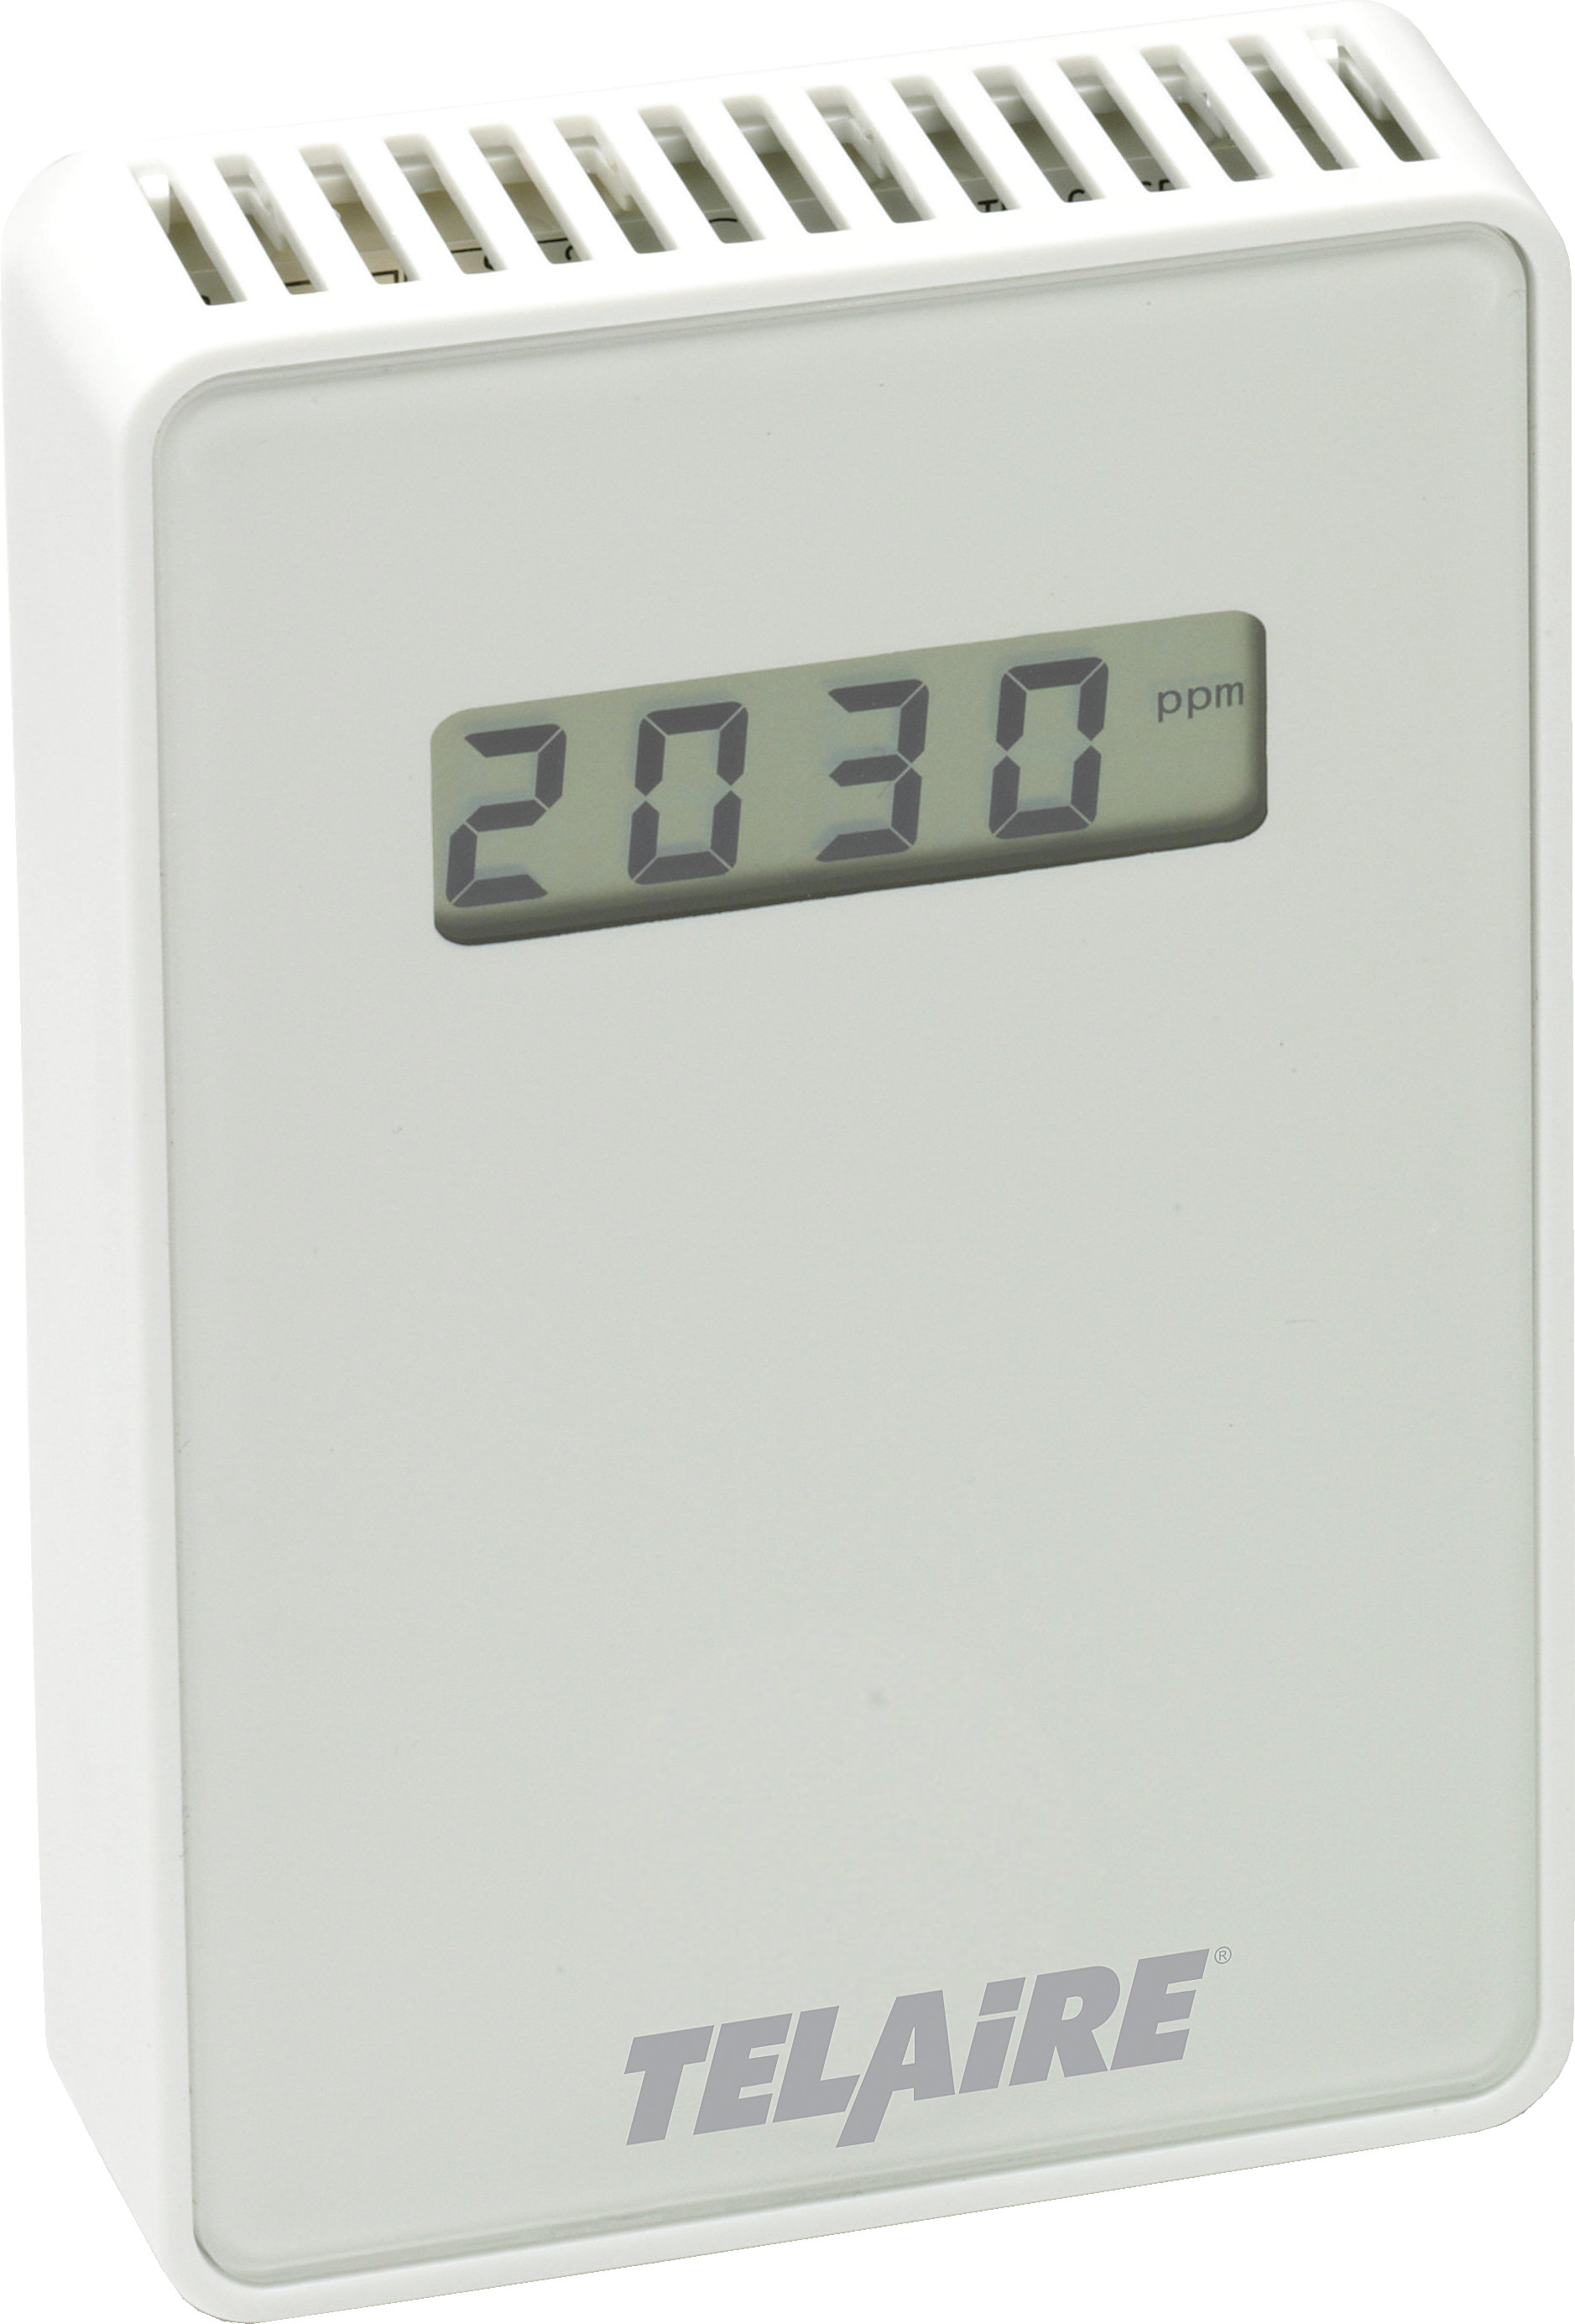 T8100-HDB - Telaire CO2 Wall Mount Rh% Active Temp Lcd Display  Black-No Relay